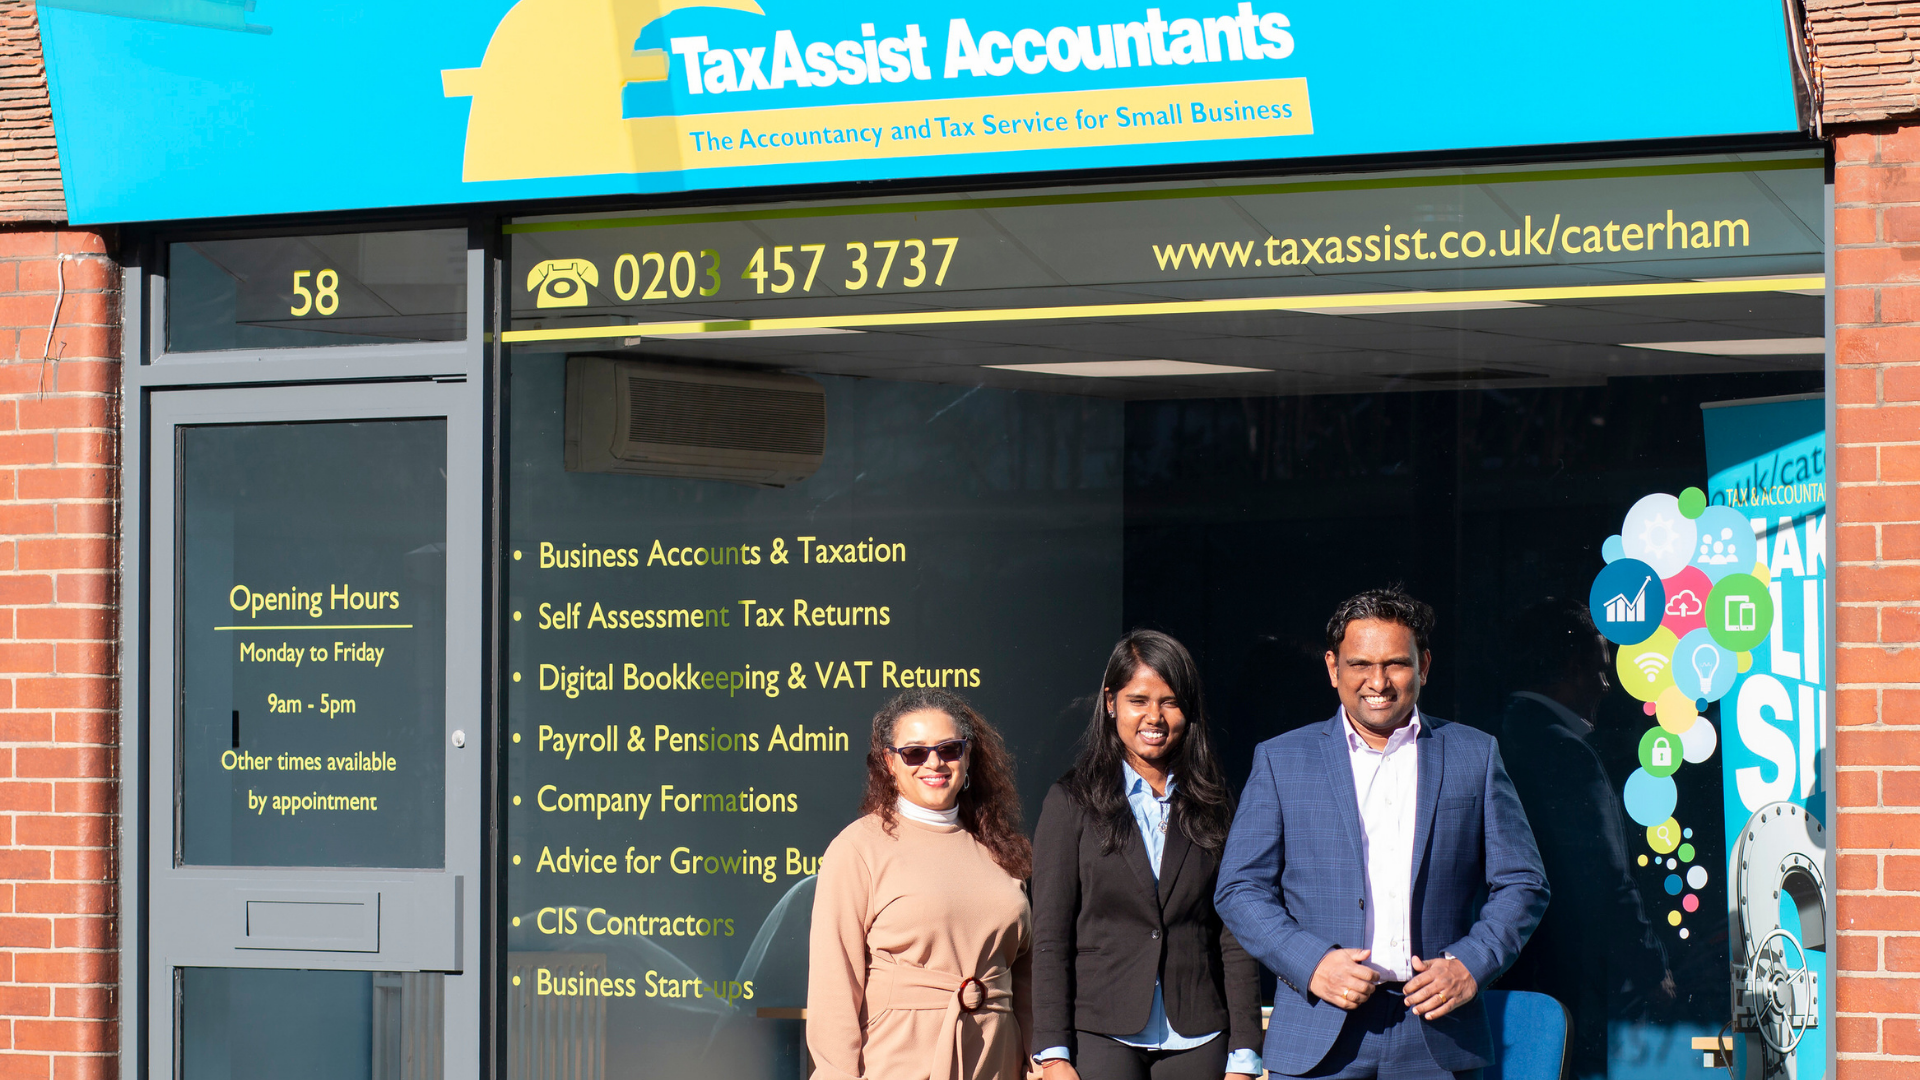 TaxAssist Accountants opens 250th shop in the UK